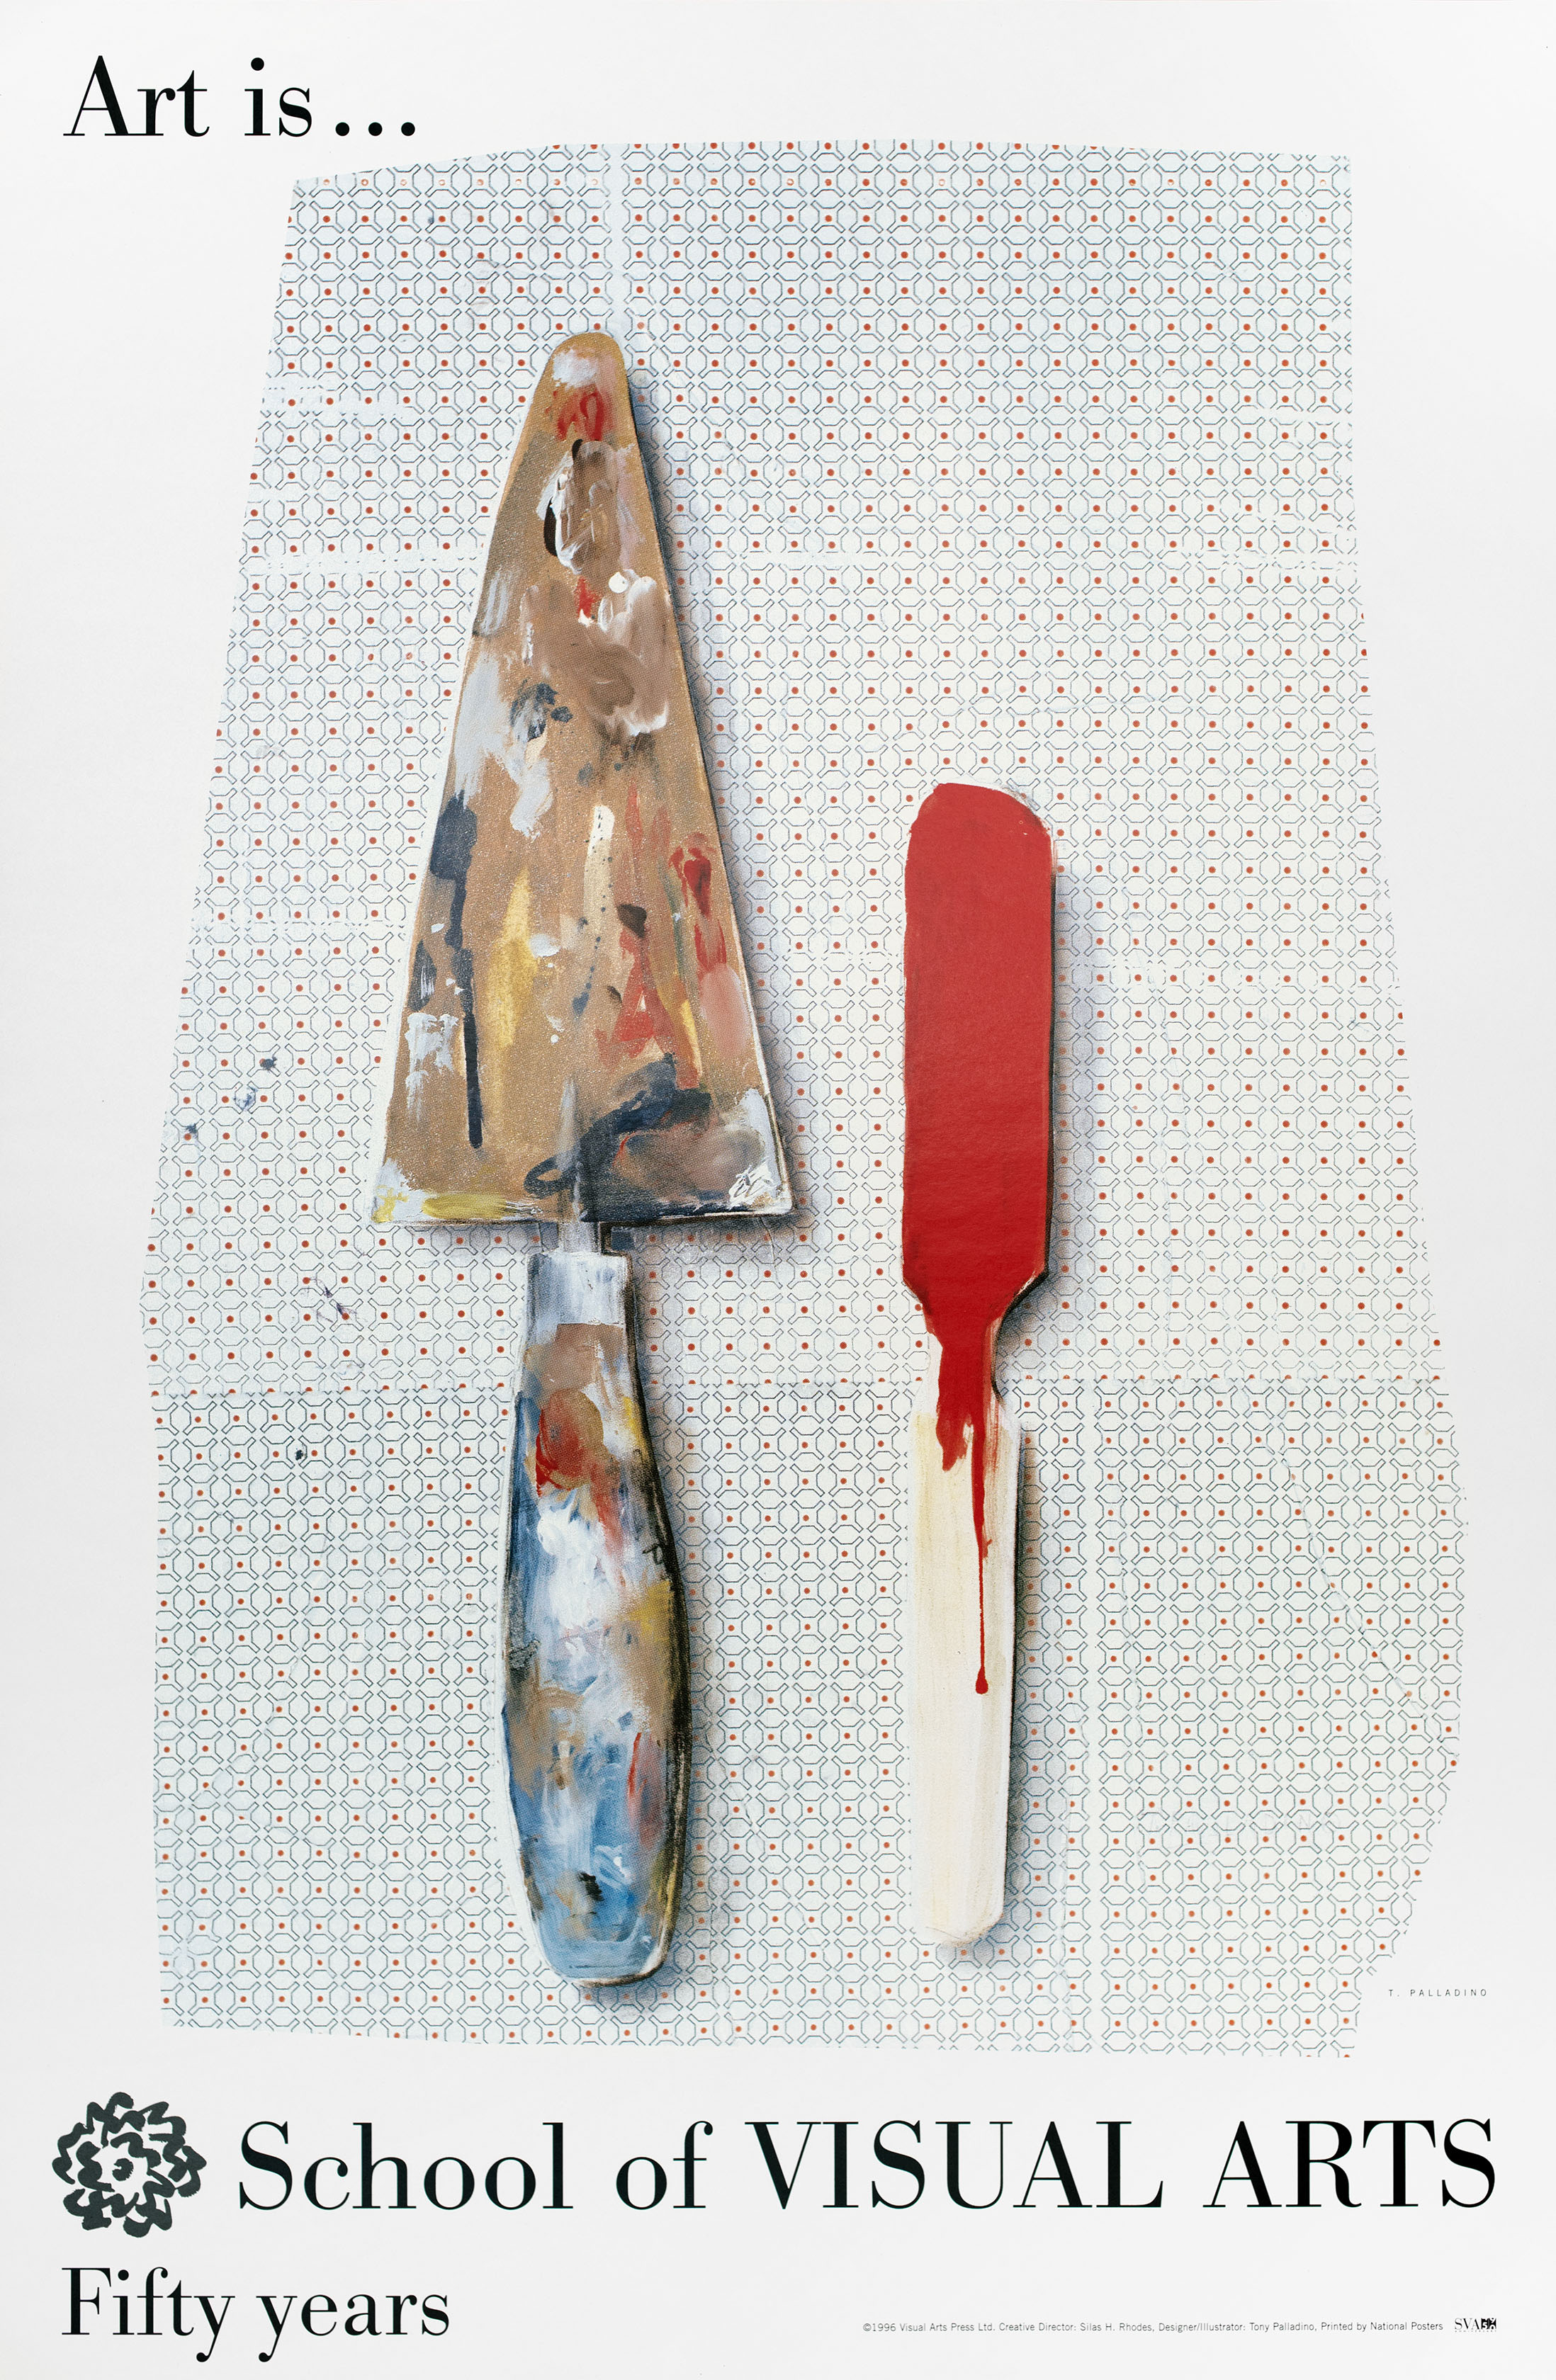 Color painting of a dirty paint palette knife and a red paint stick against a delicate red, black and white pattern.